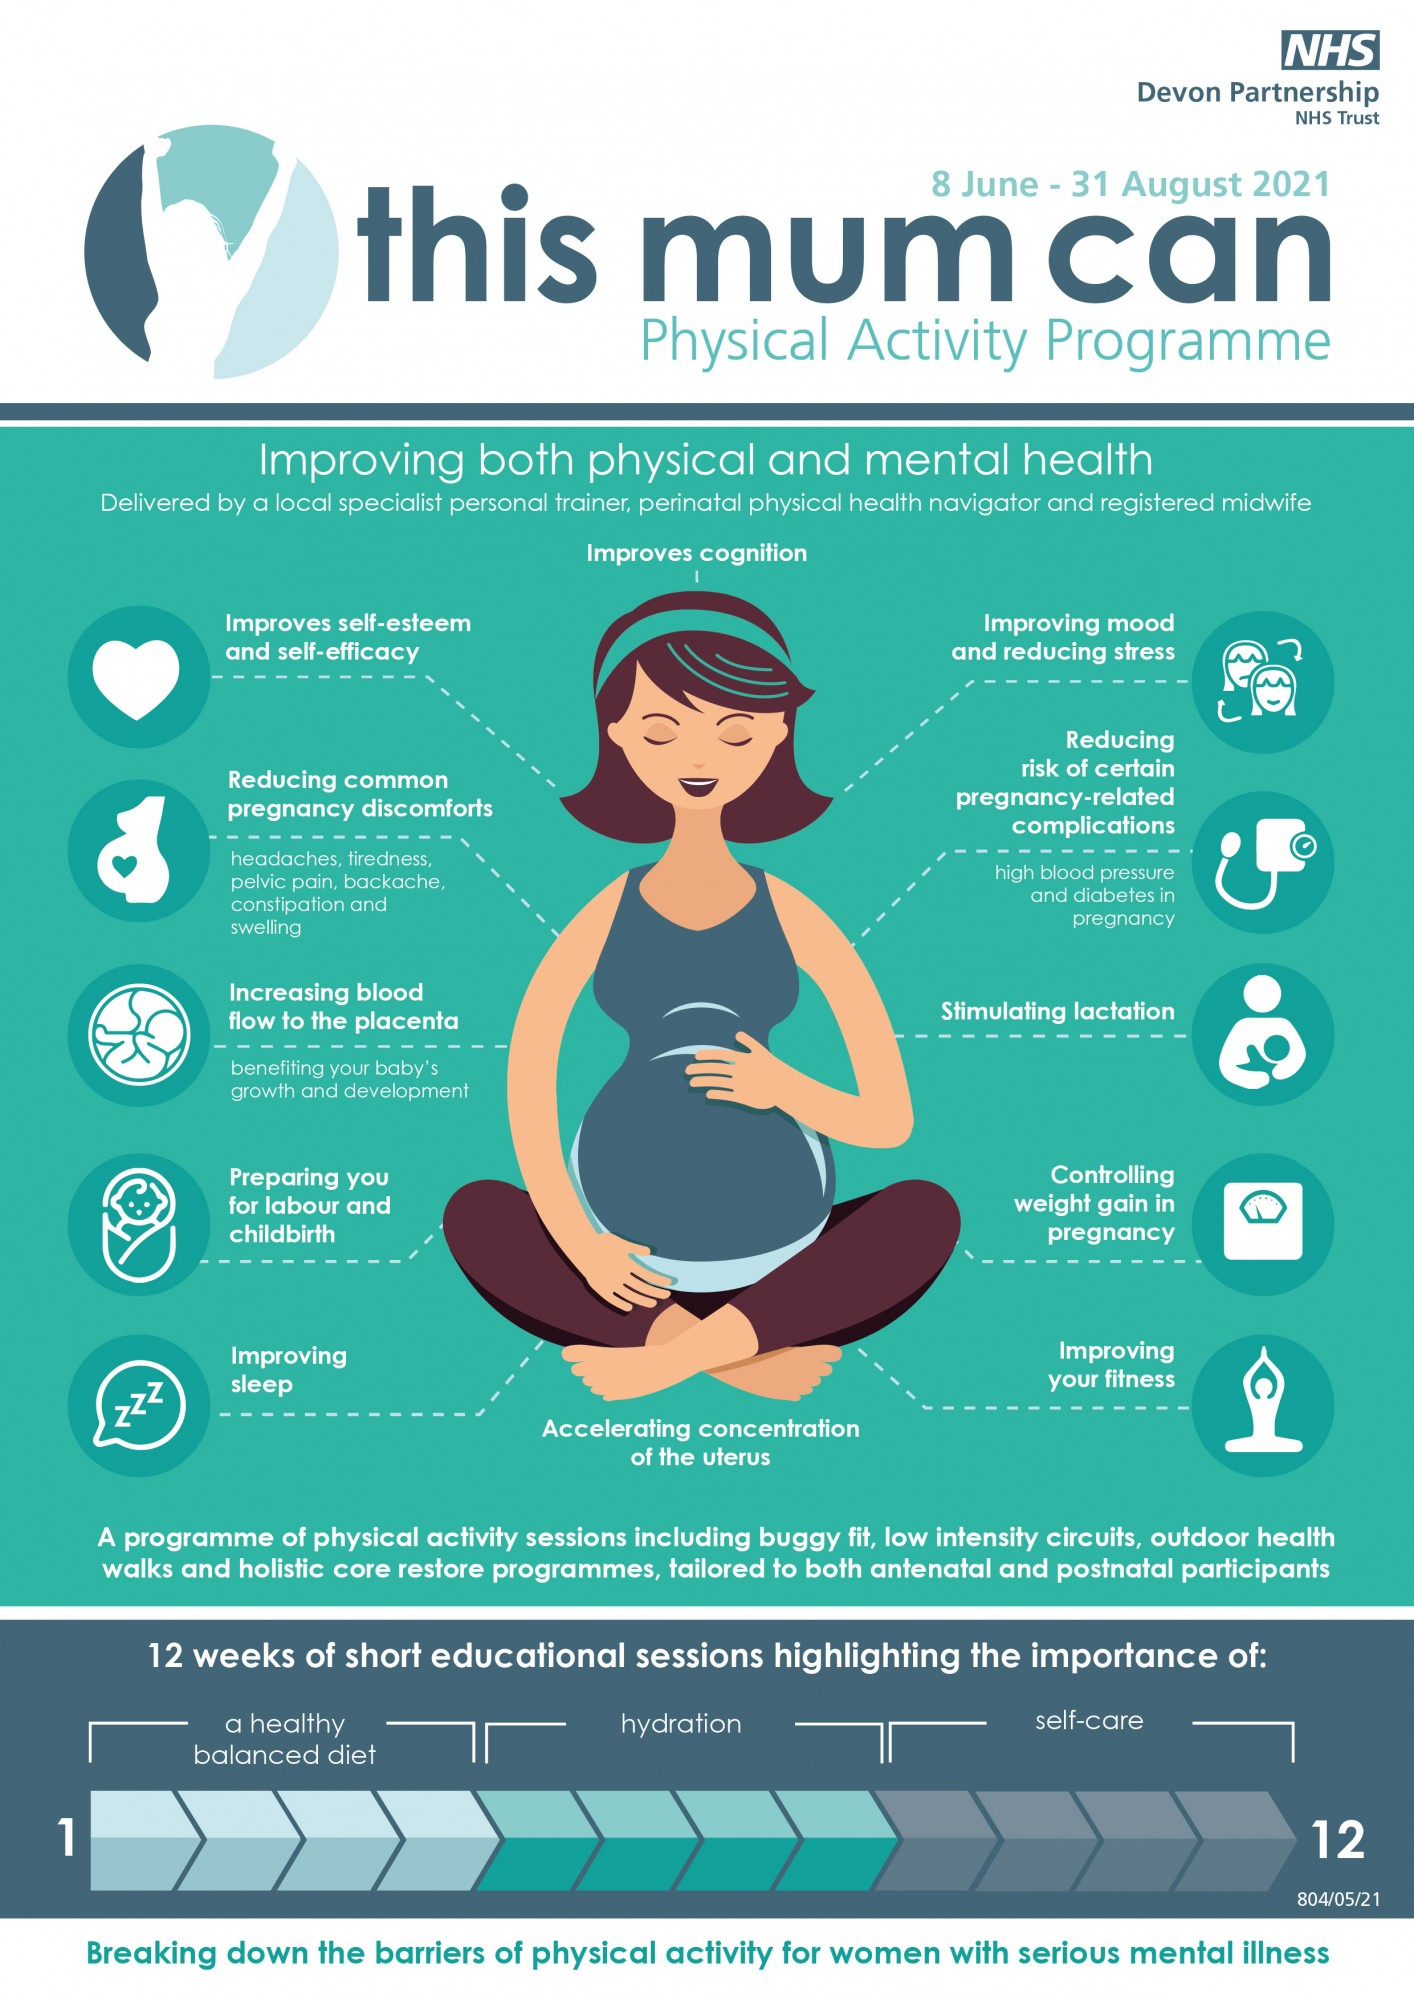 'This Mum Can' Physical Activity Programme infographic